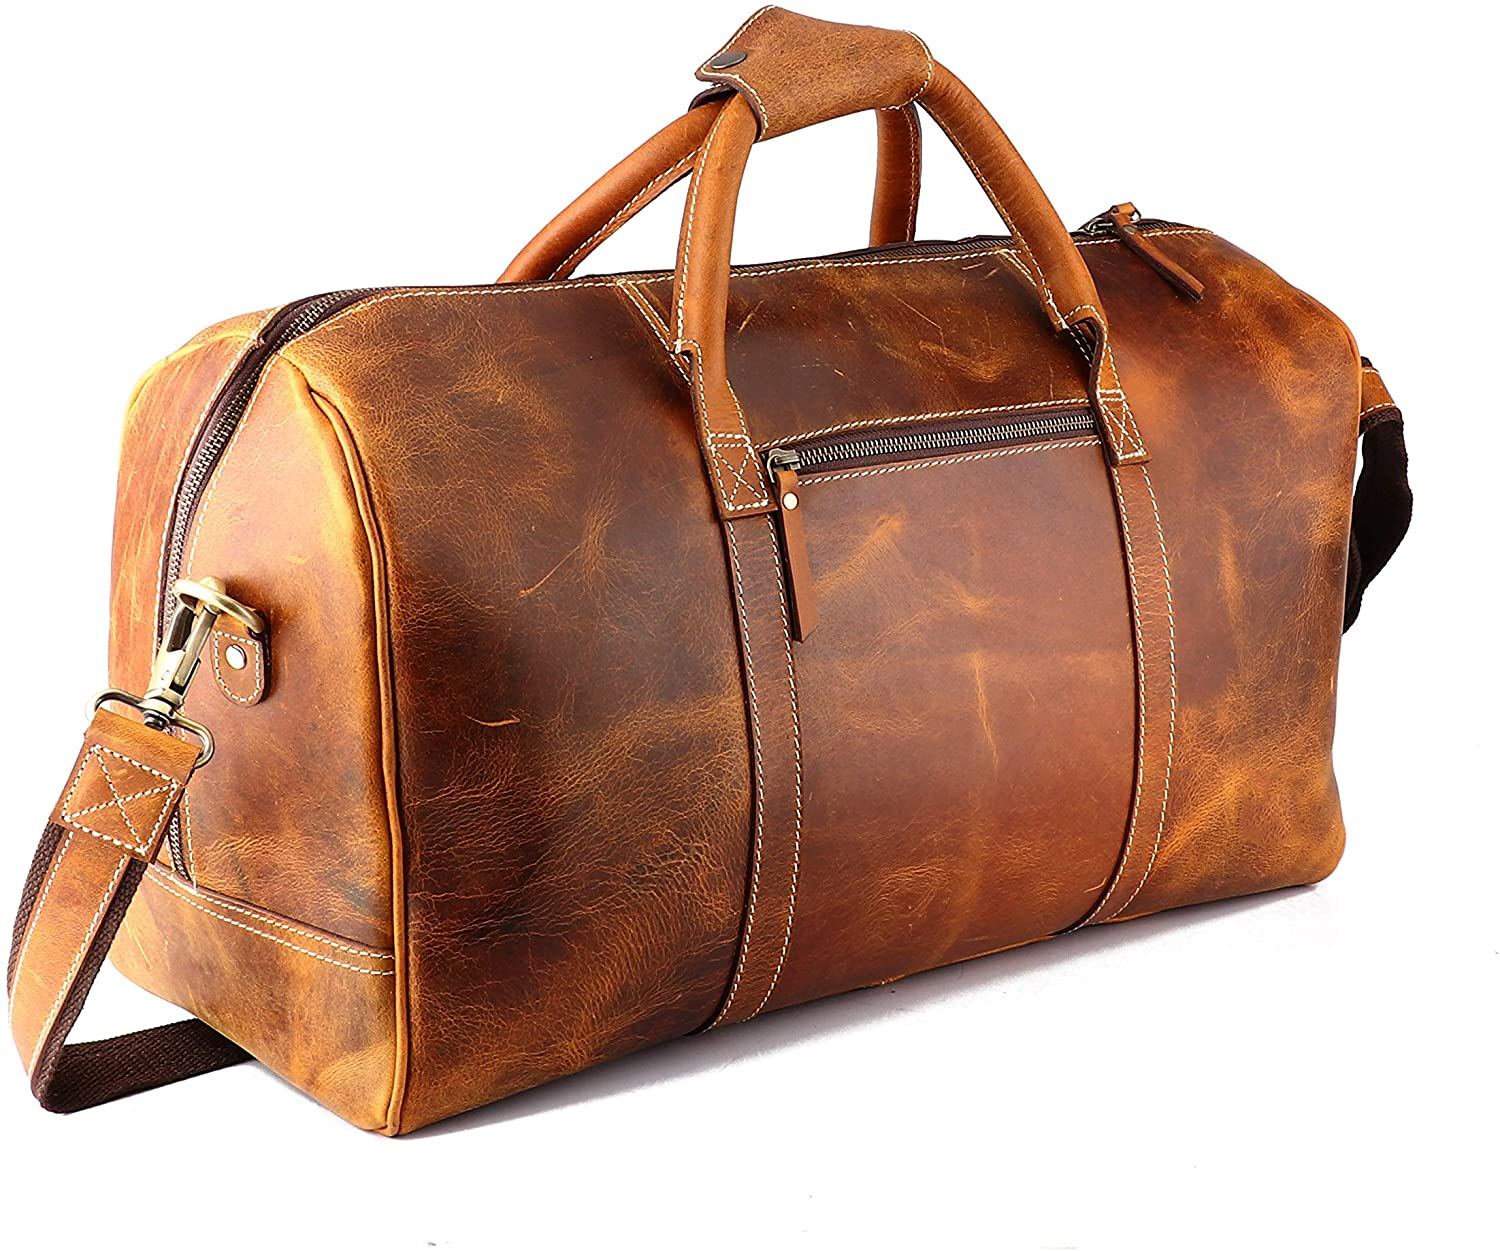 8. Leather Castle Carry-on Luggage Bag,